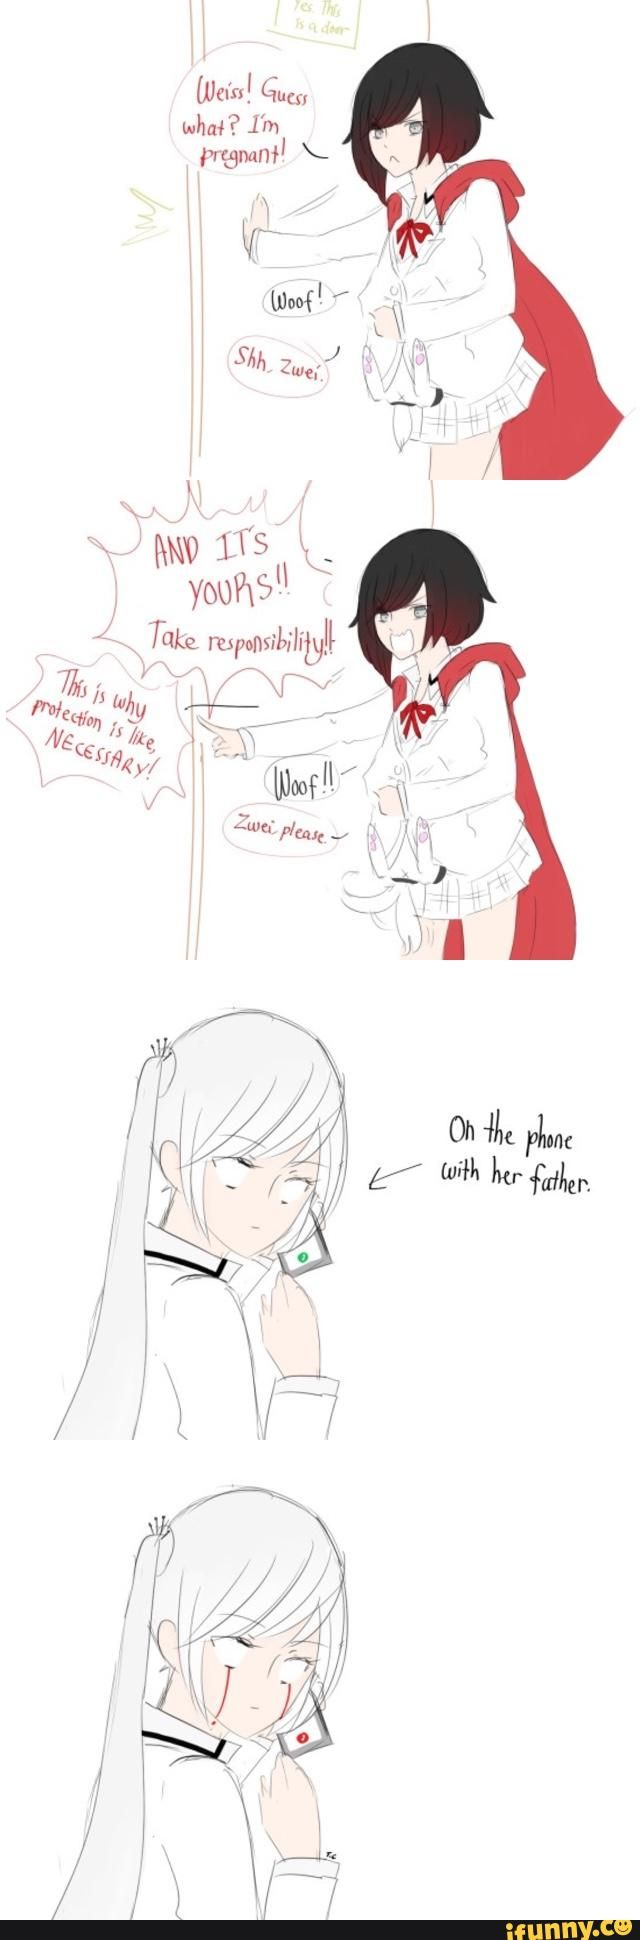 """rwby, whiterose Meanwhile in Atlas, Nicholas is looking out the window with a frown. """"No one can know that Weiss has man parts. Execute Order 66."""